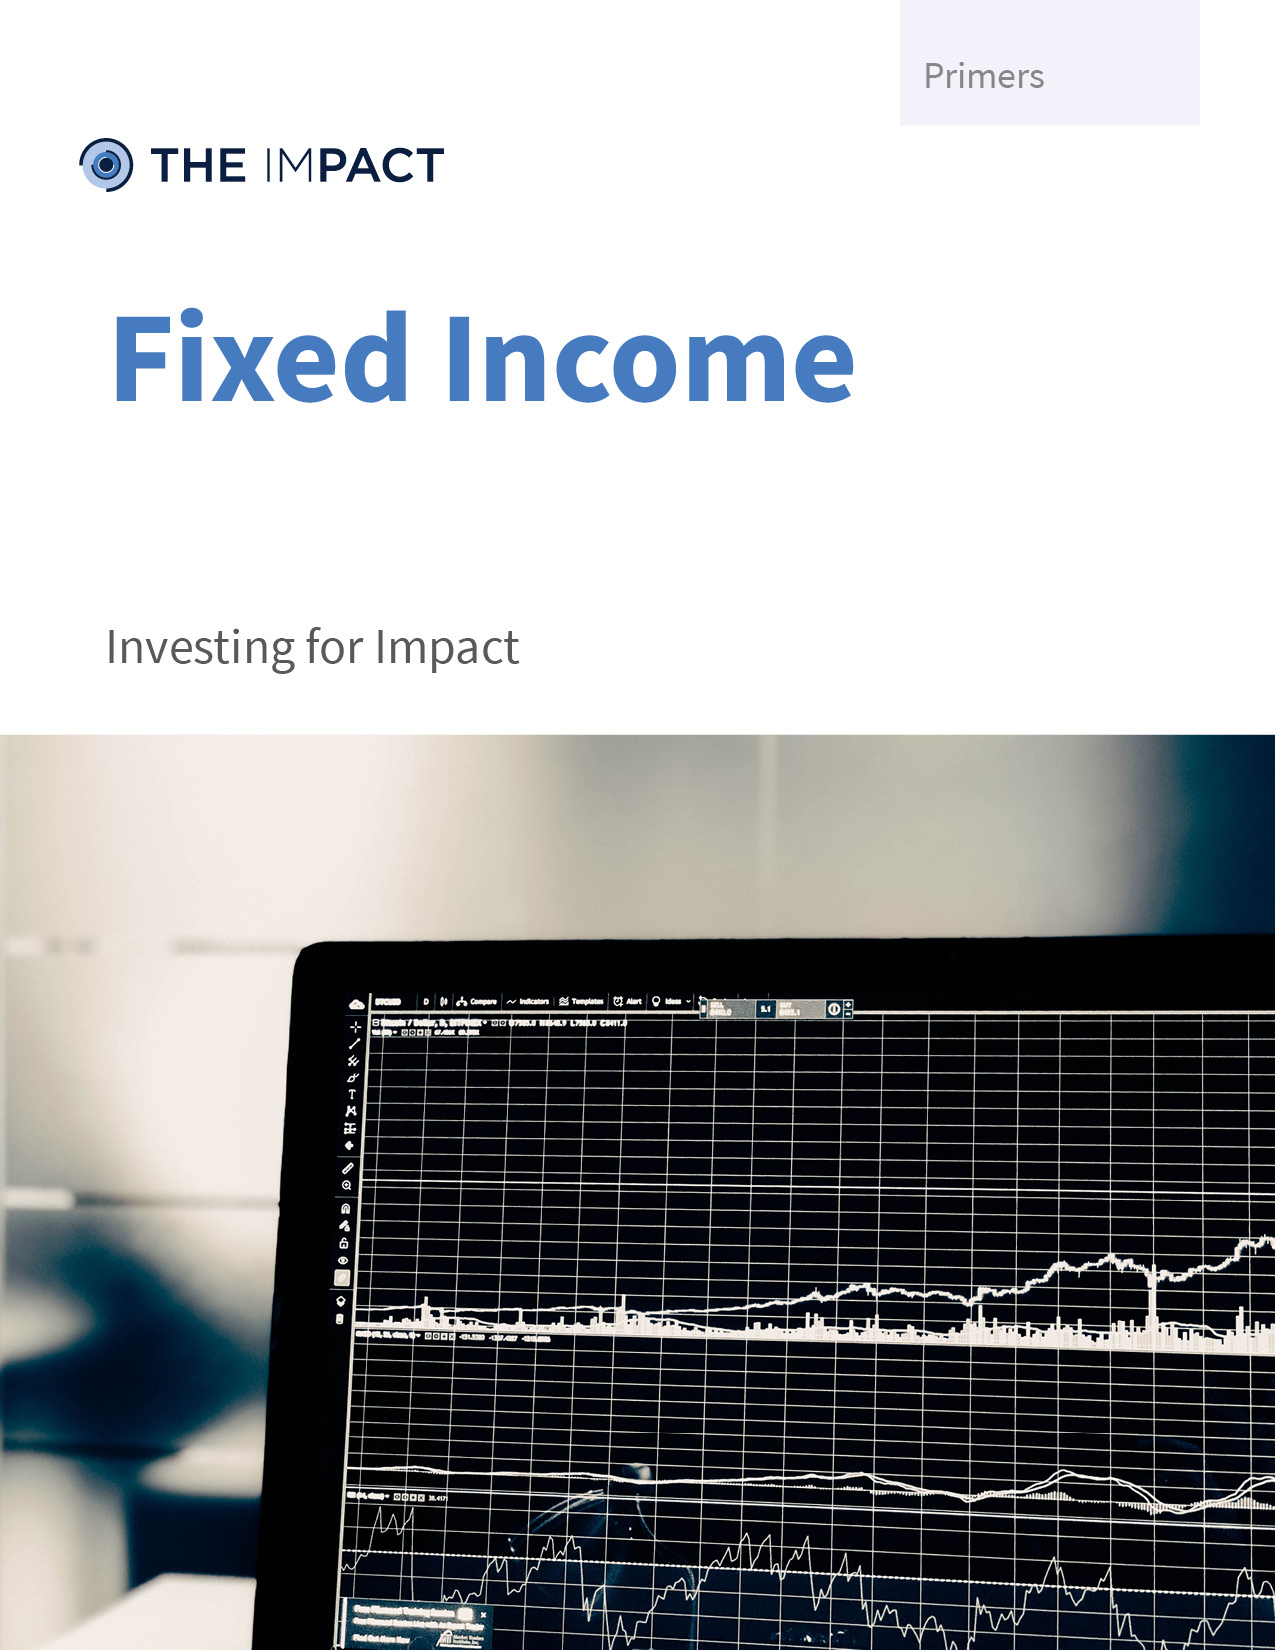 Fixed Income. A primer by The ImPact.